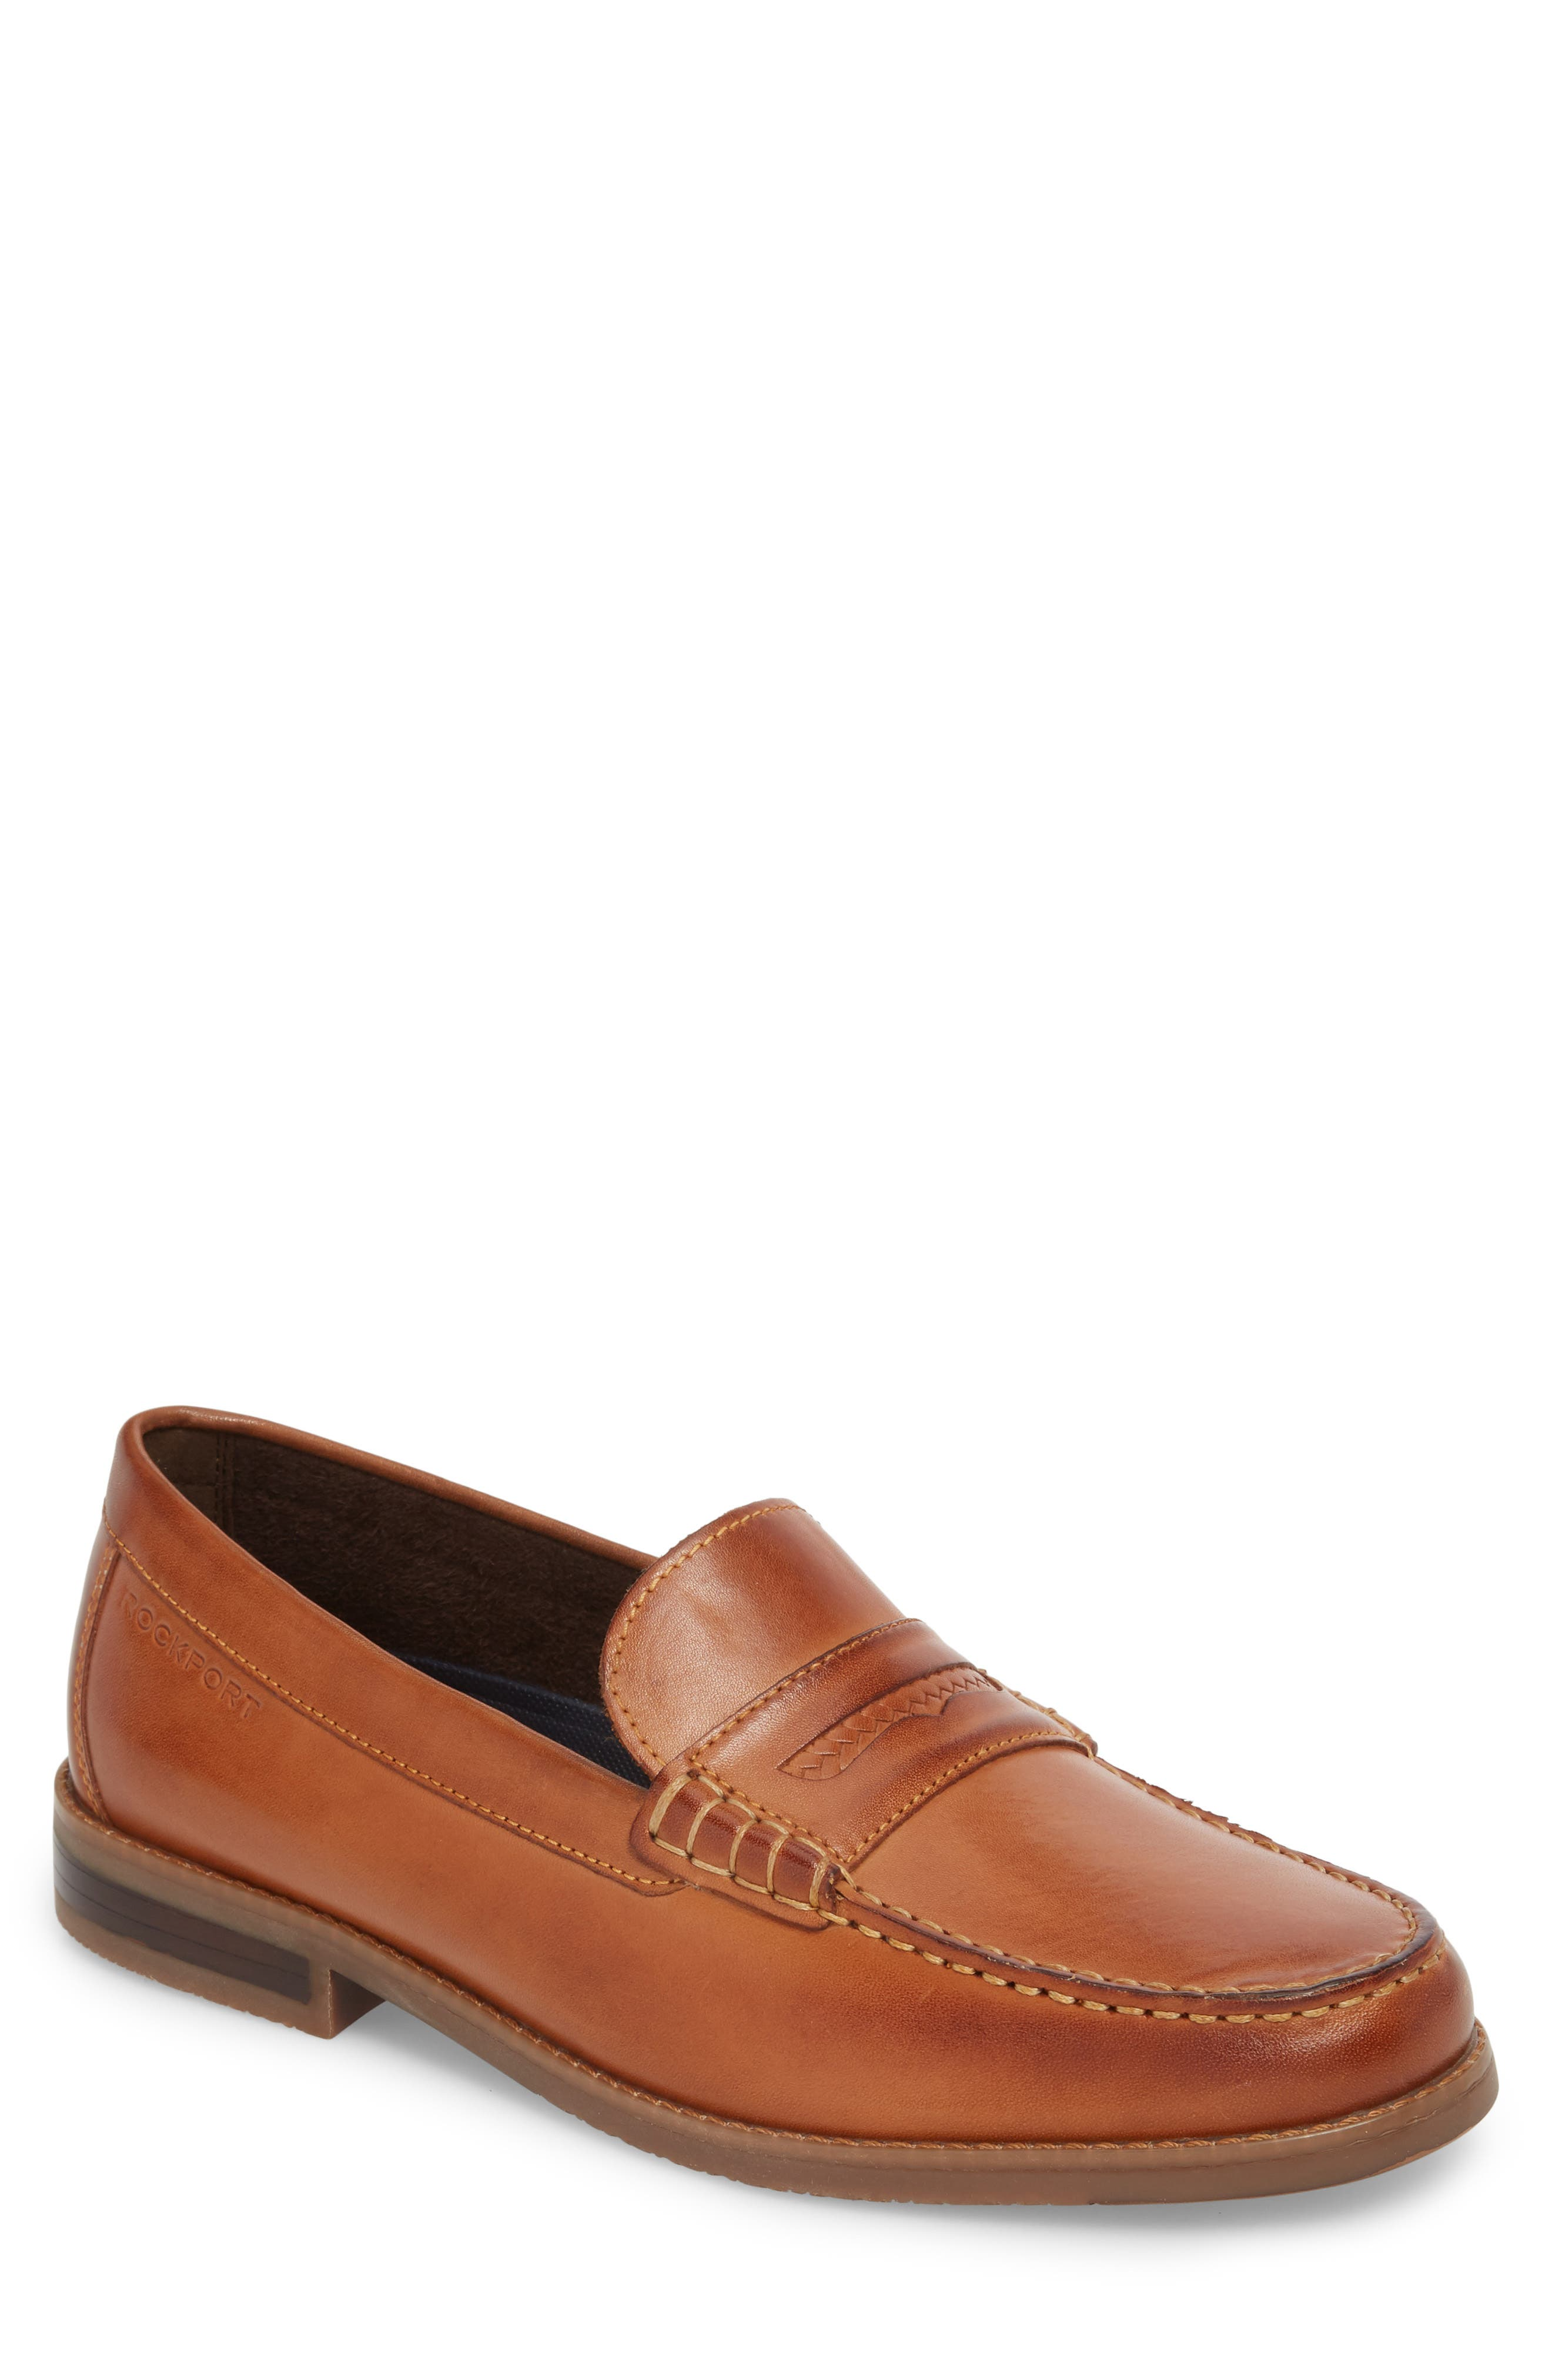 Cayleb Moc Toe Penny Loafer,                             Main thumbnail 1, color,                             Cognac Leather